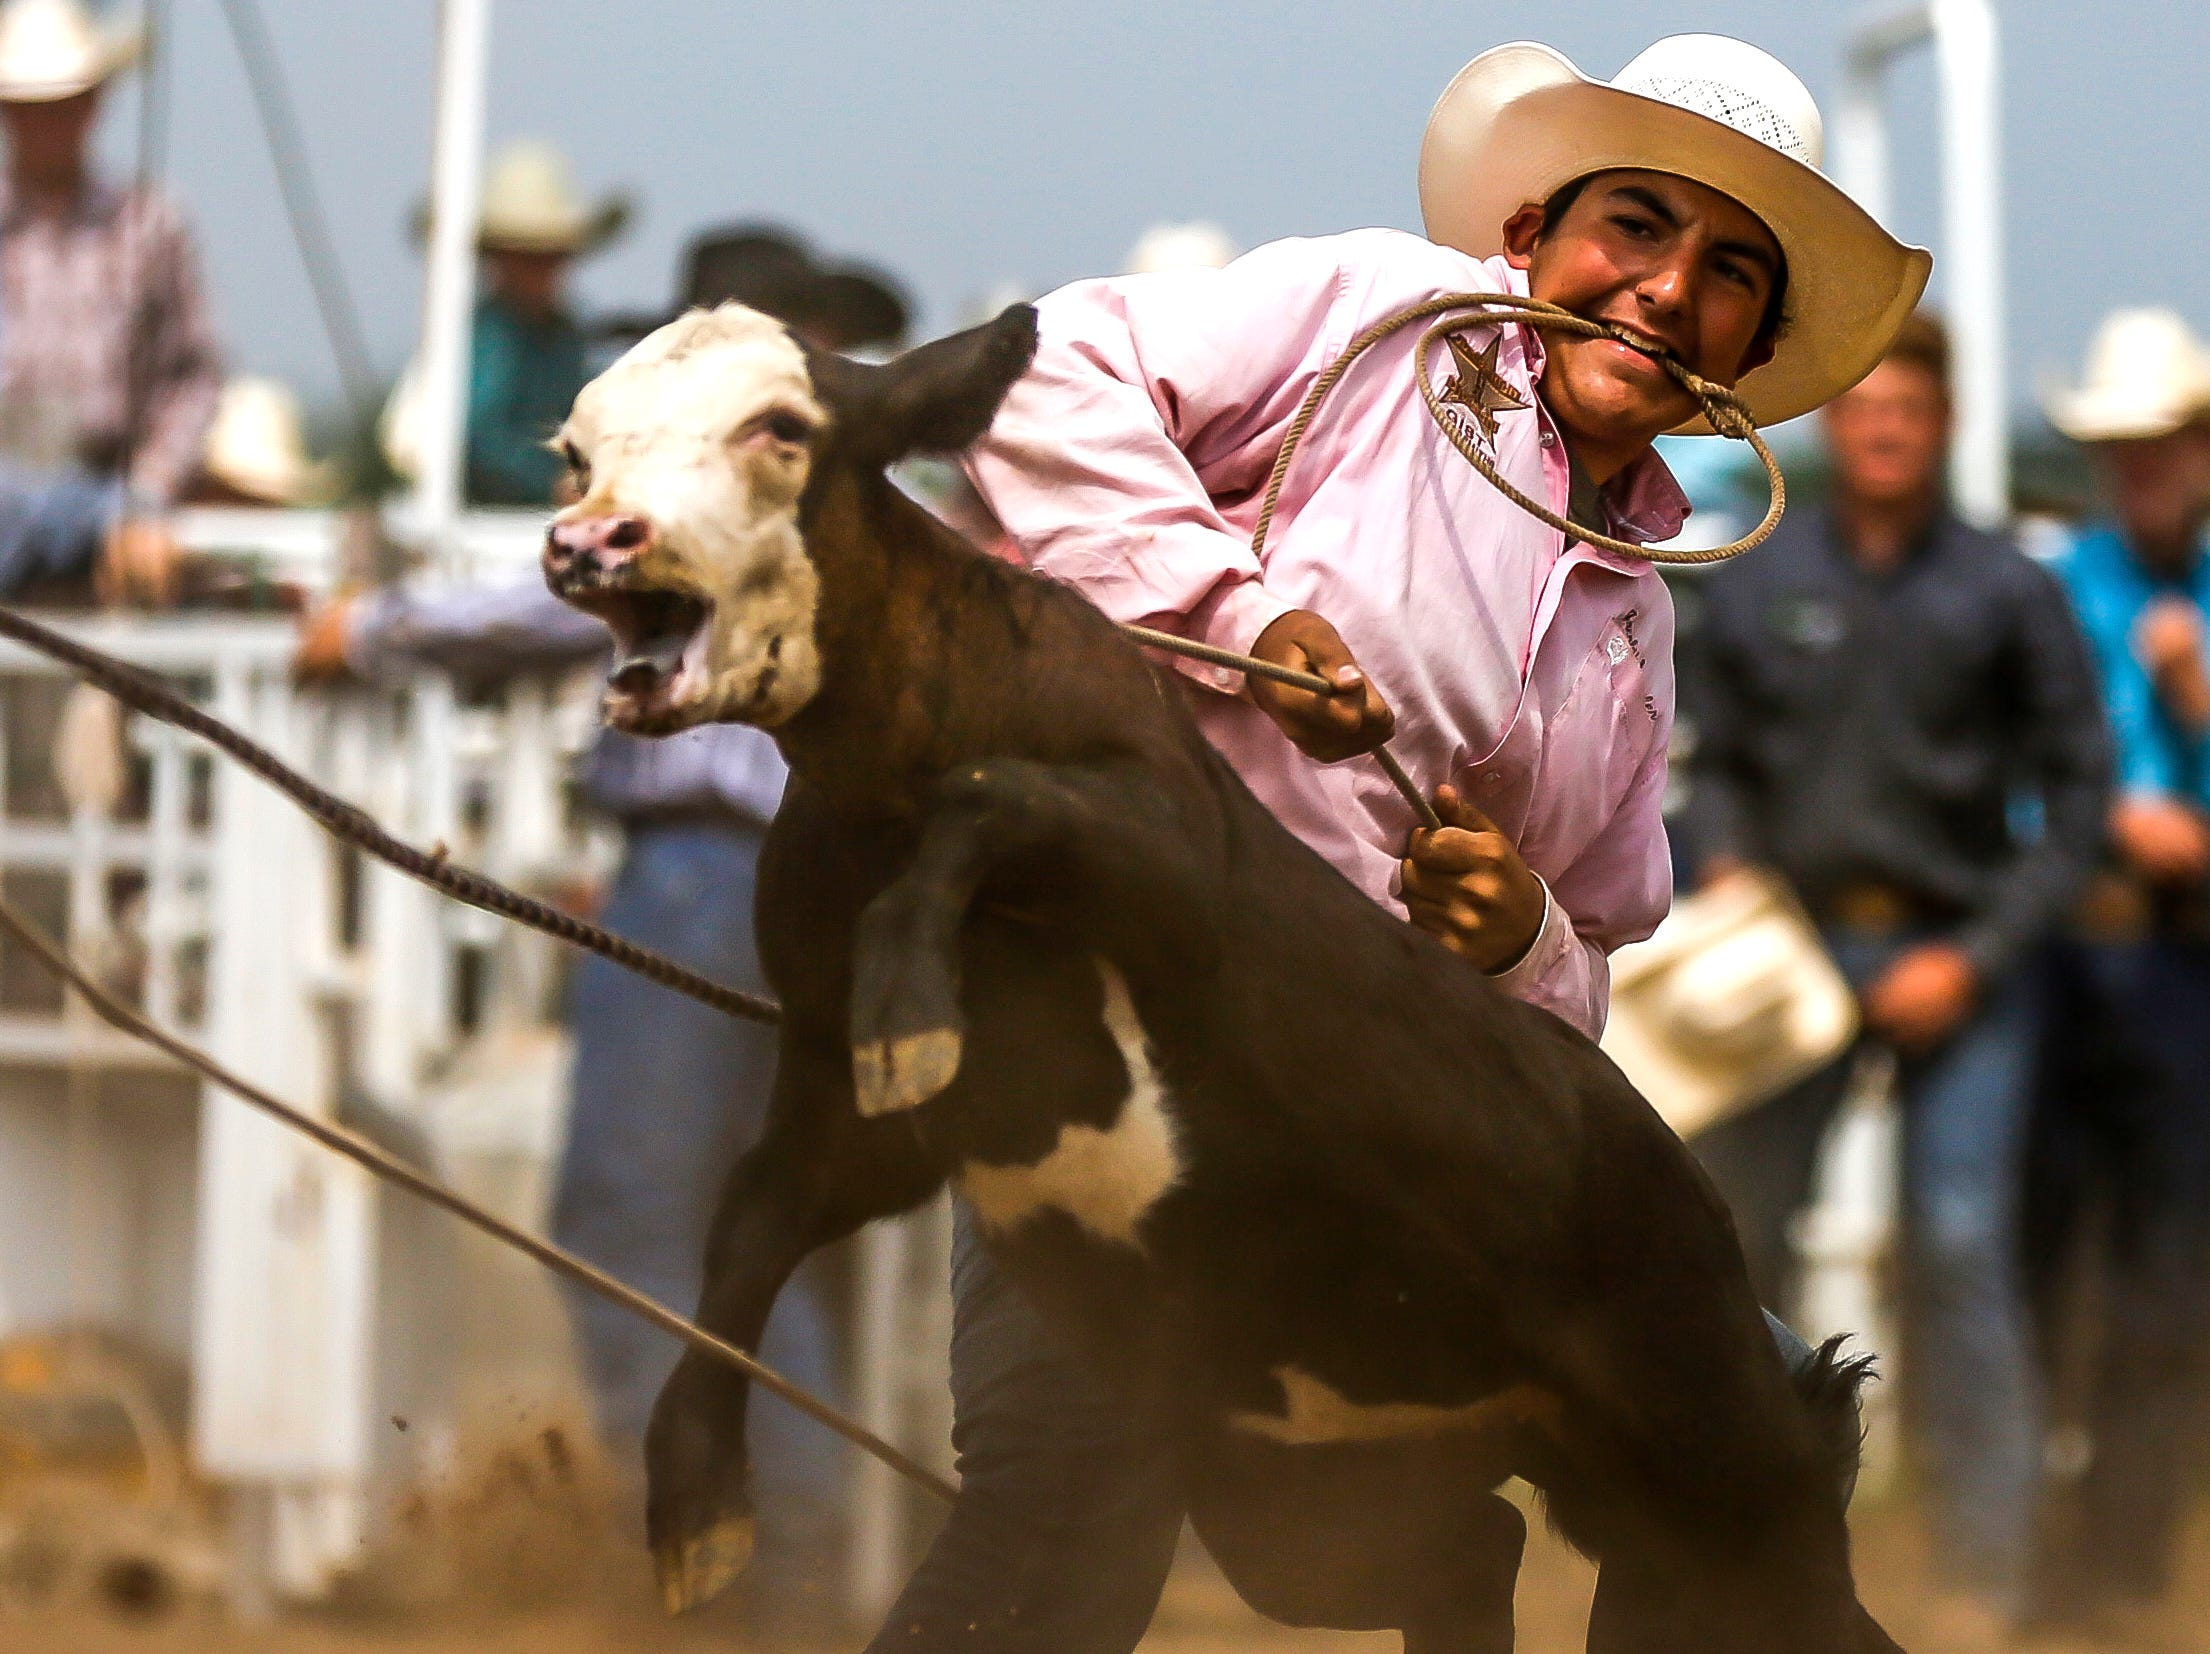 A competitor ropes a calf during the Amherst Little Britches Wisconsin Rodeo in Amherst, Wis., August 17, 2018.